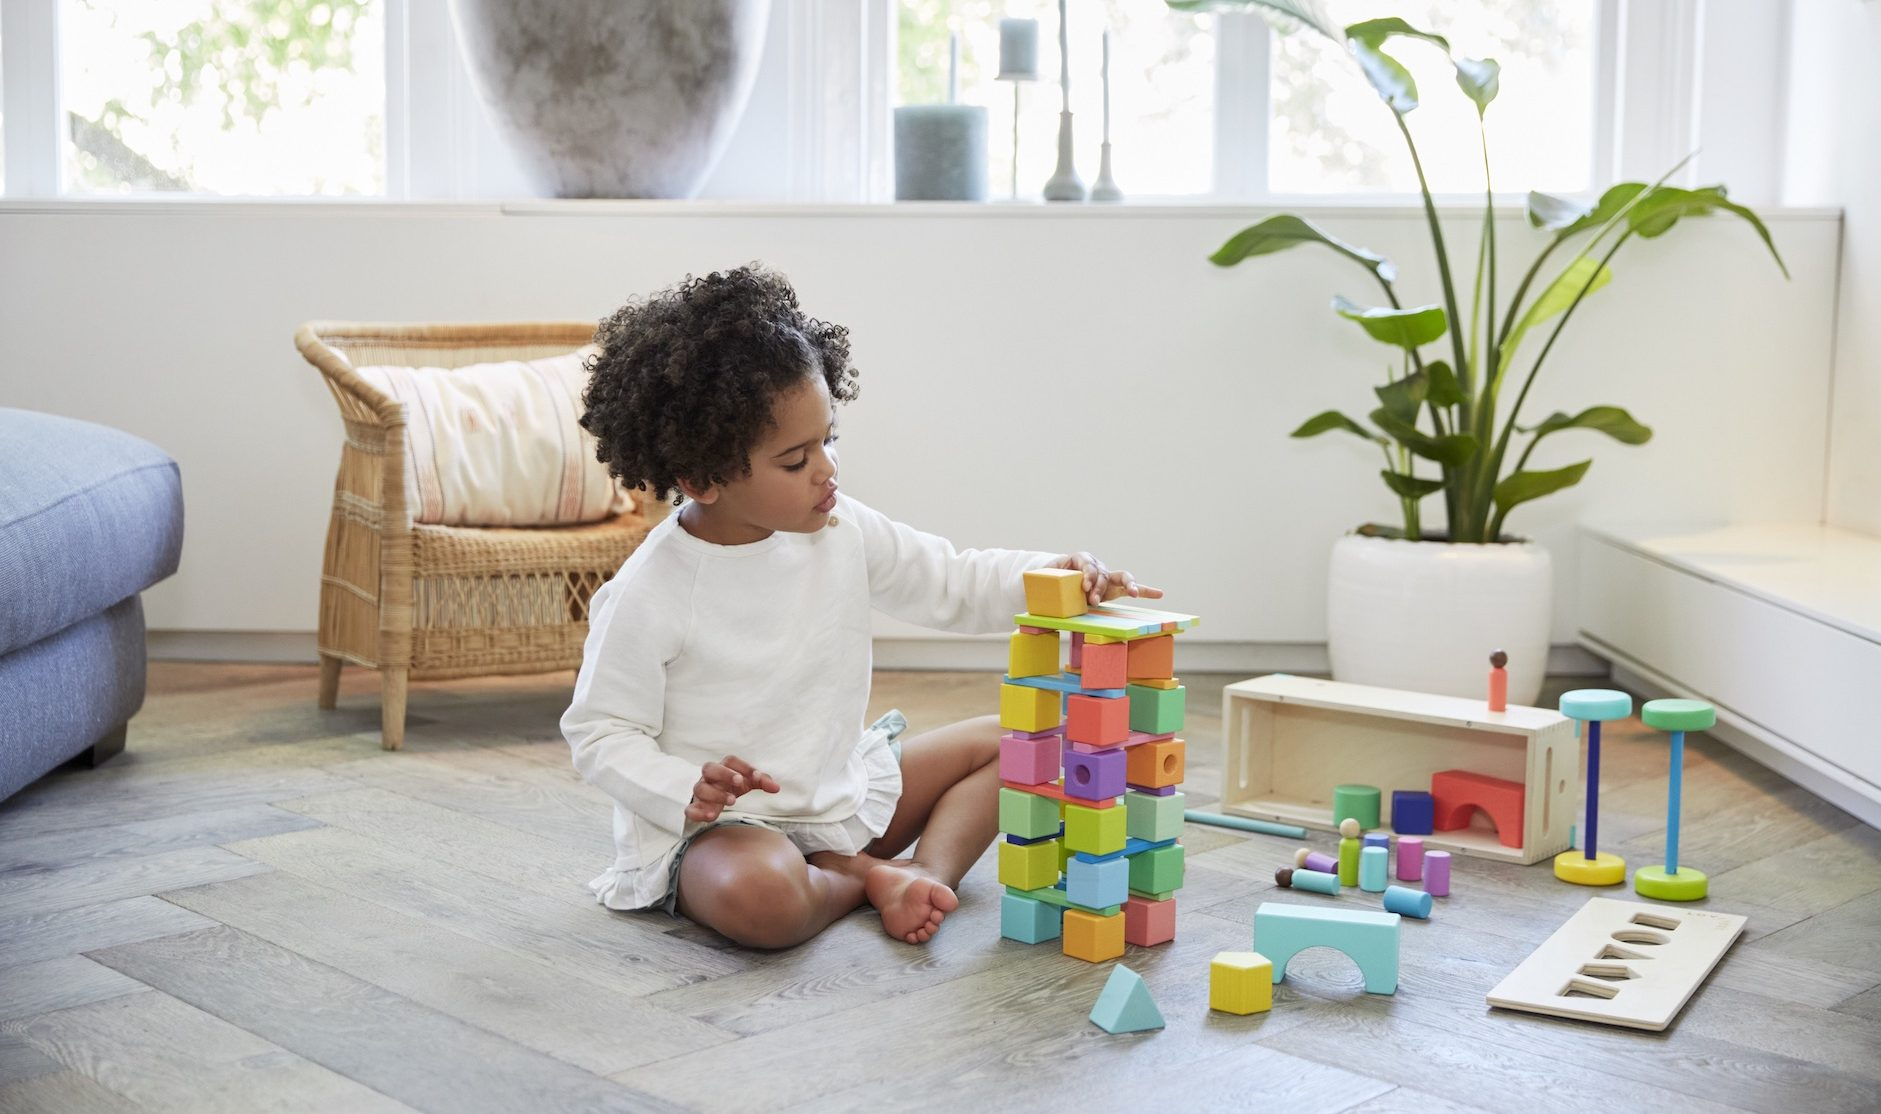 Young child sitting on the floor building a tower with The Block Set by Lovevery